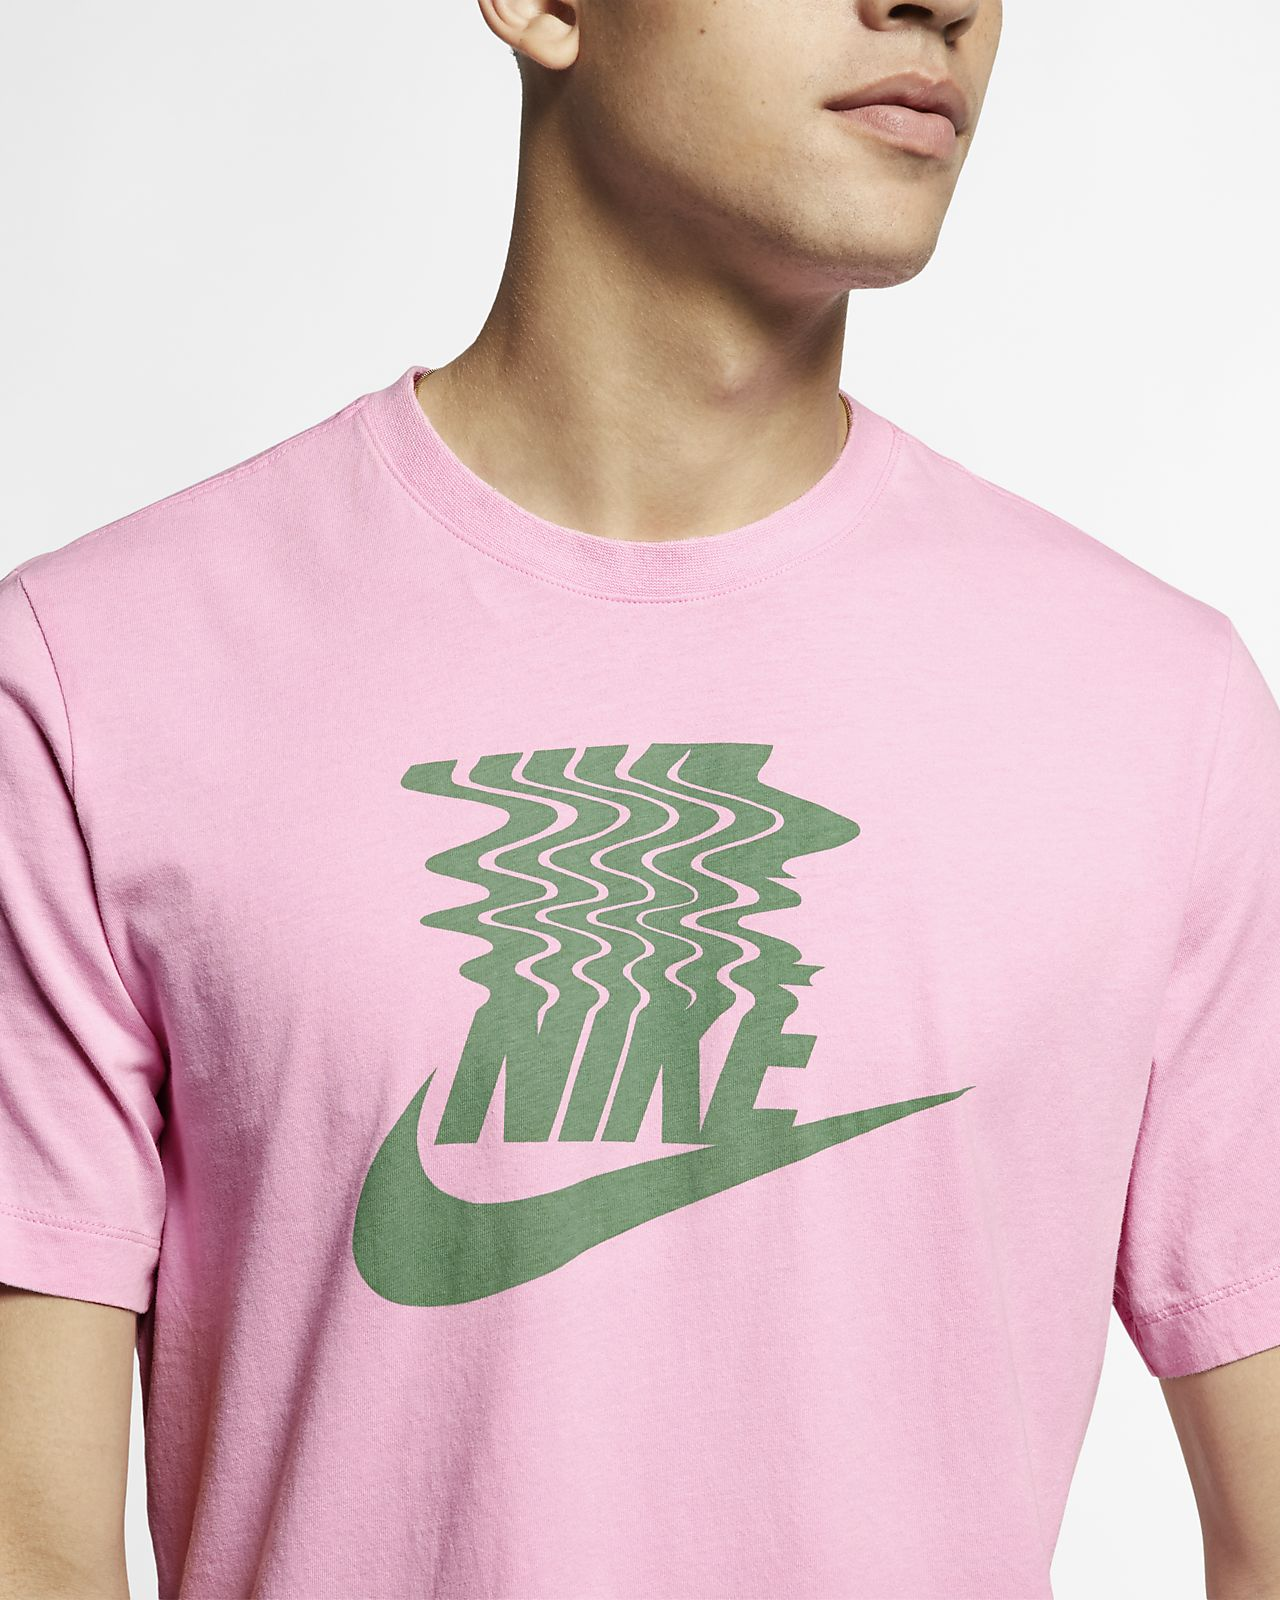 8278c56f Nike T Shirts Pink – EDGE Engineering and Consulting Limited